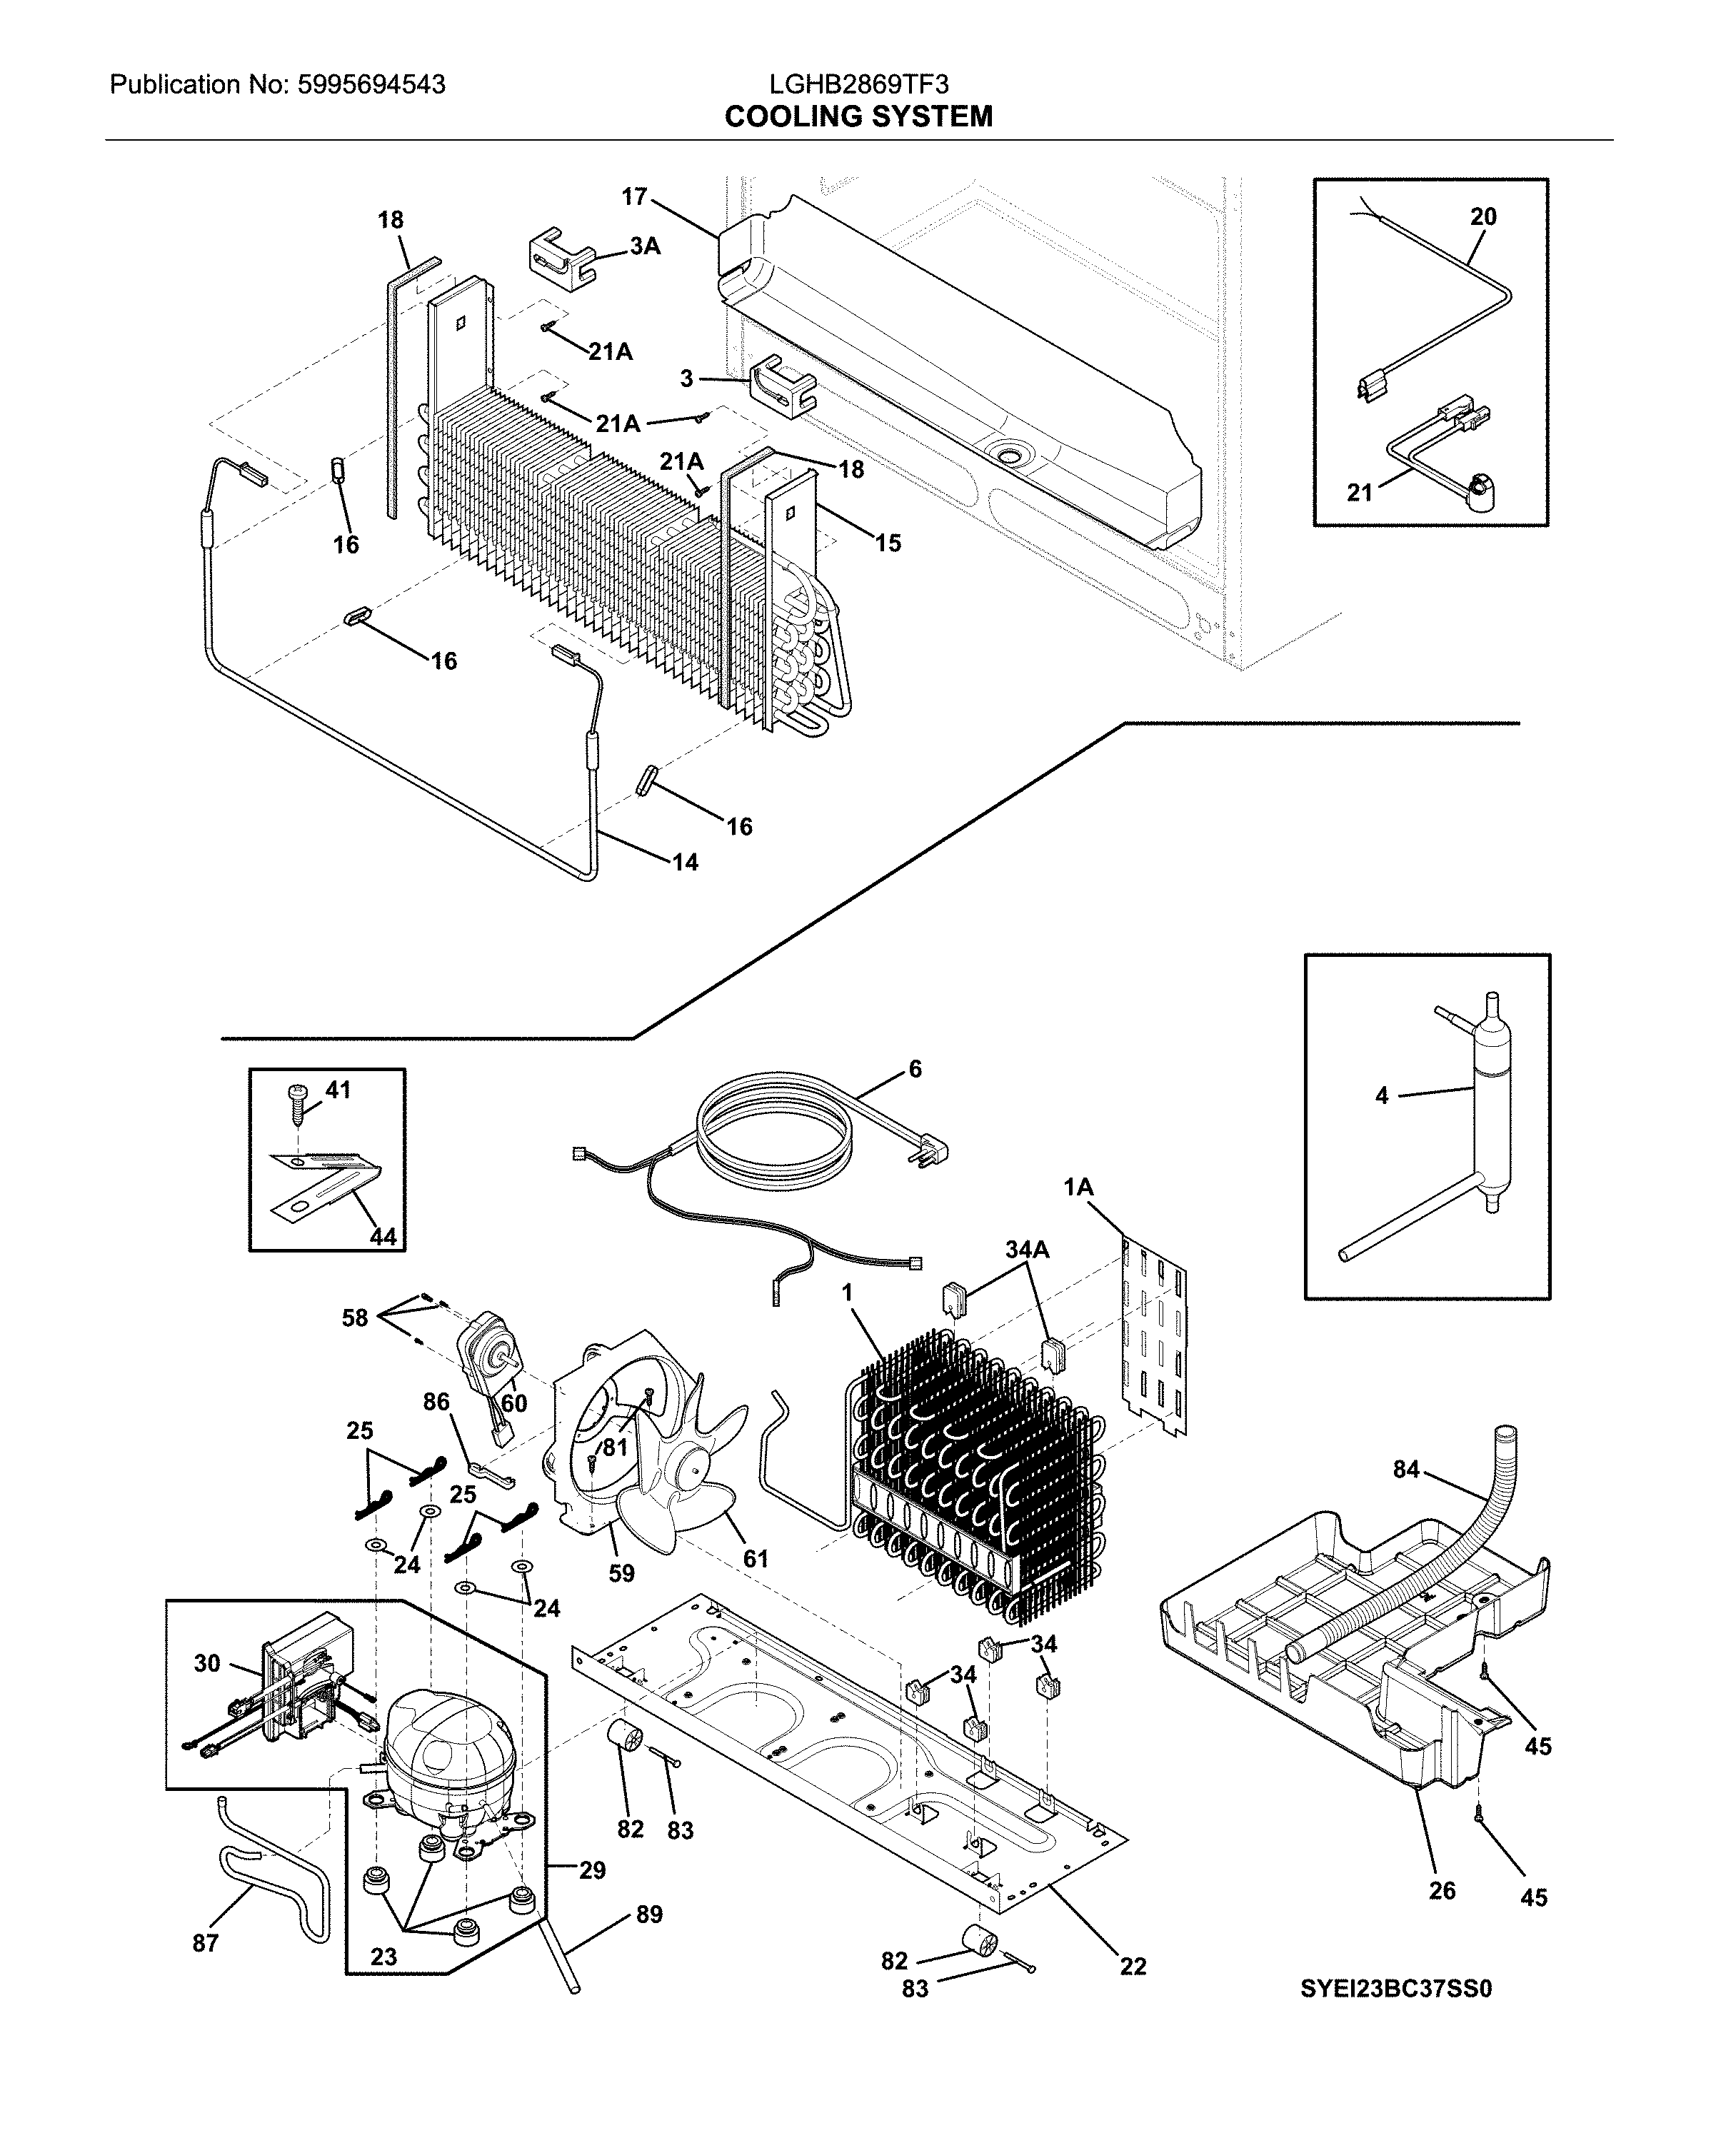 Frigidaire LGHB2869TF3 cooling system diagram